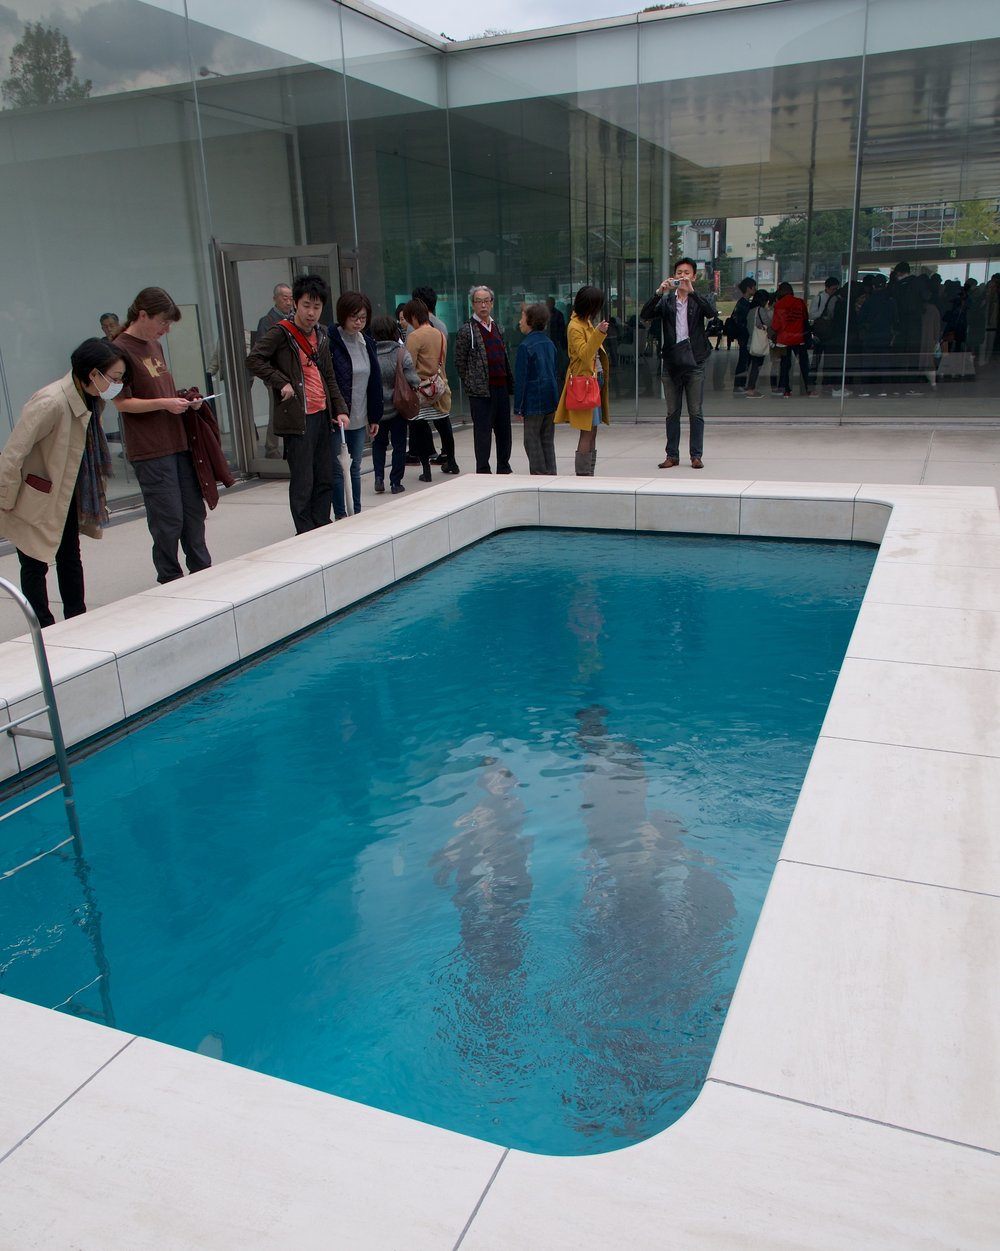 The Swimming Pool, Leandro Erlich